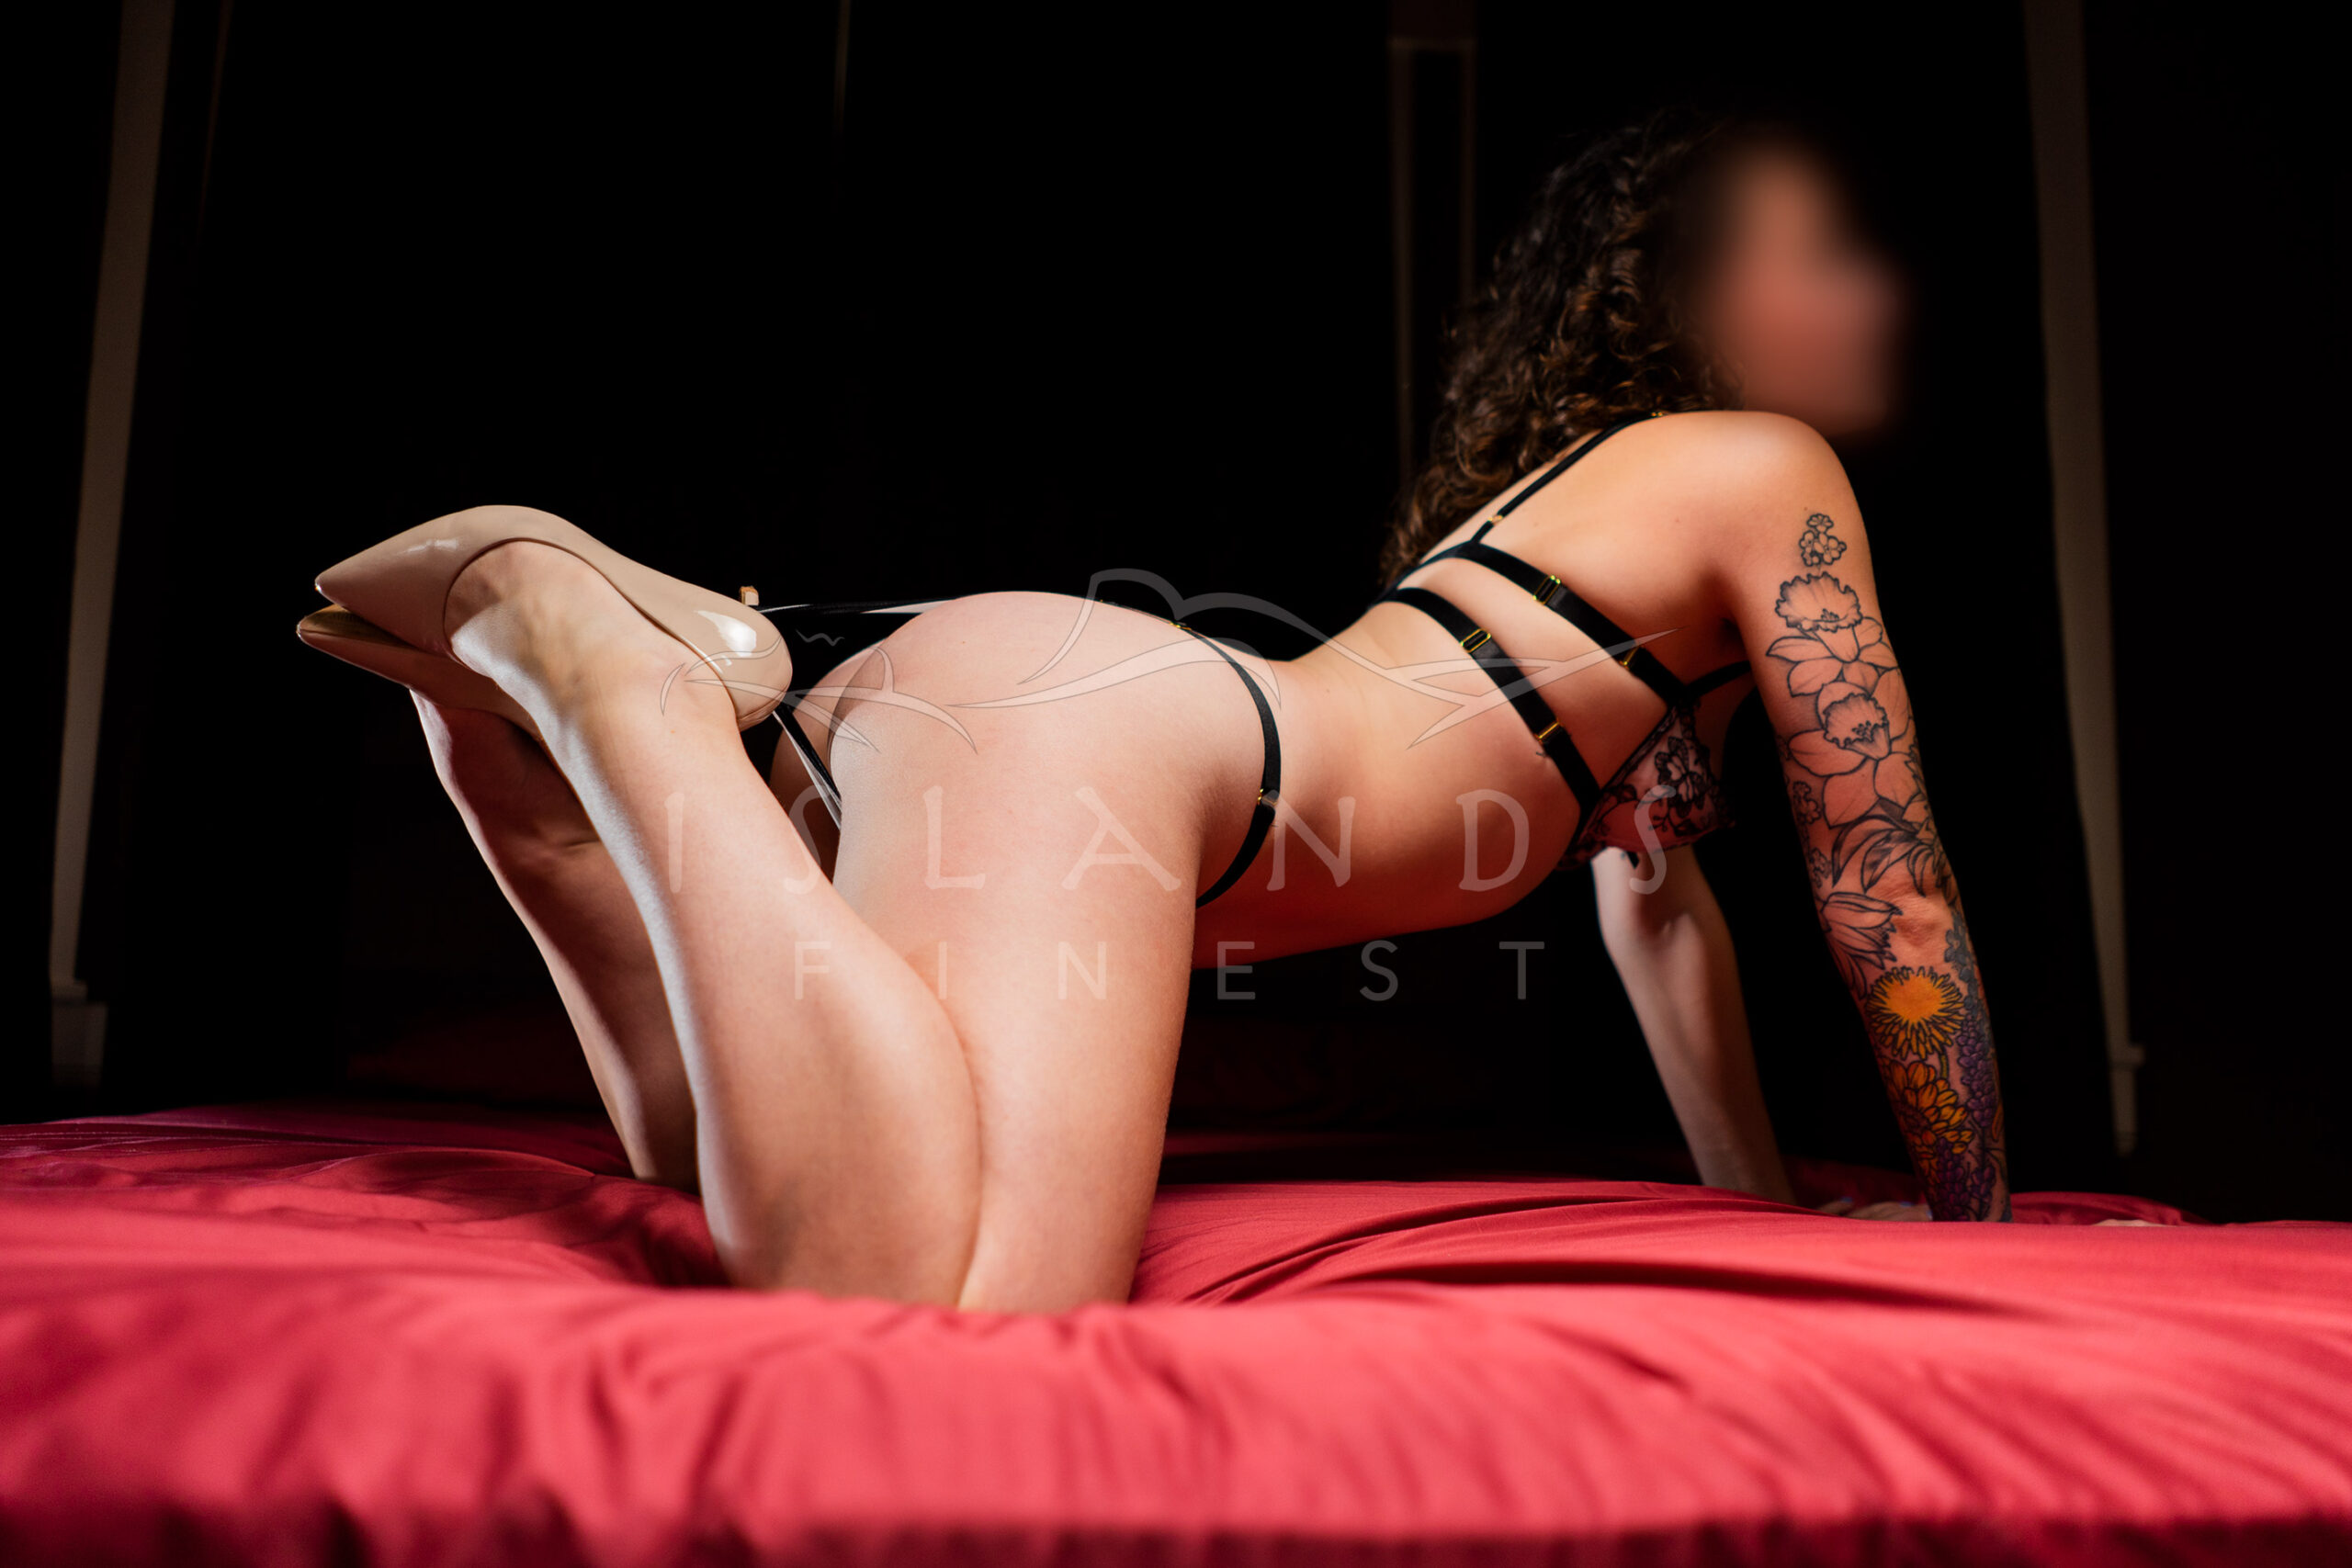 Escort Mabel posing on a bed at Island's Finest escort agency in Victoria, BC